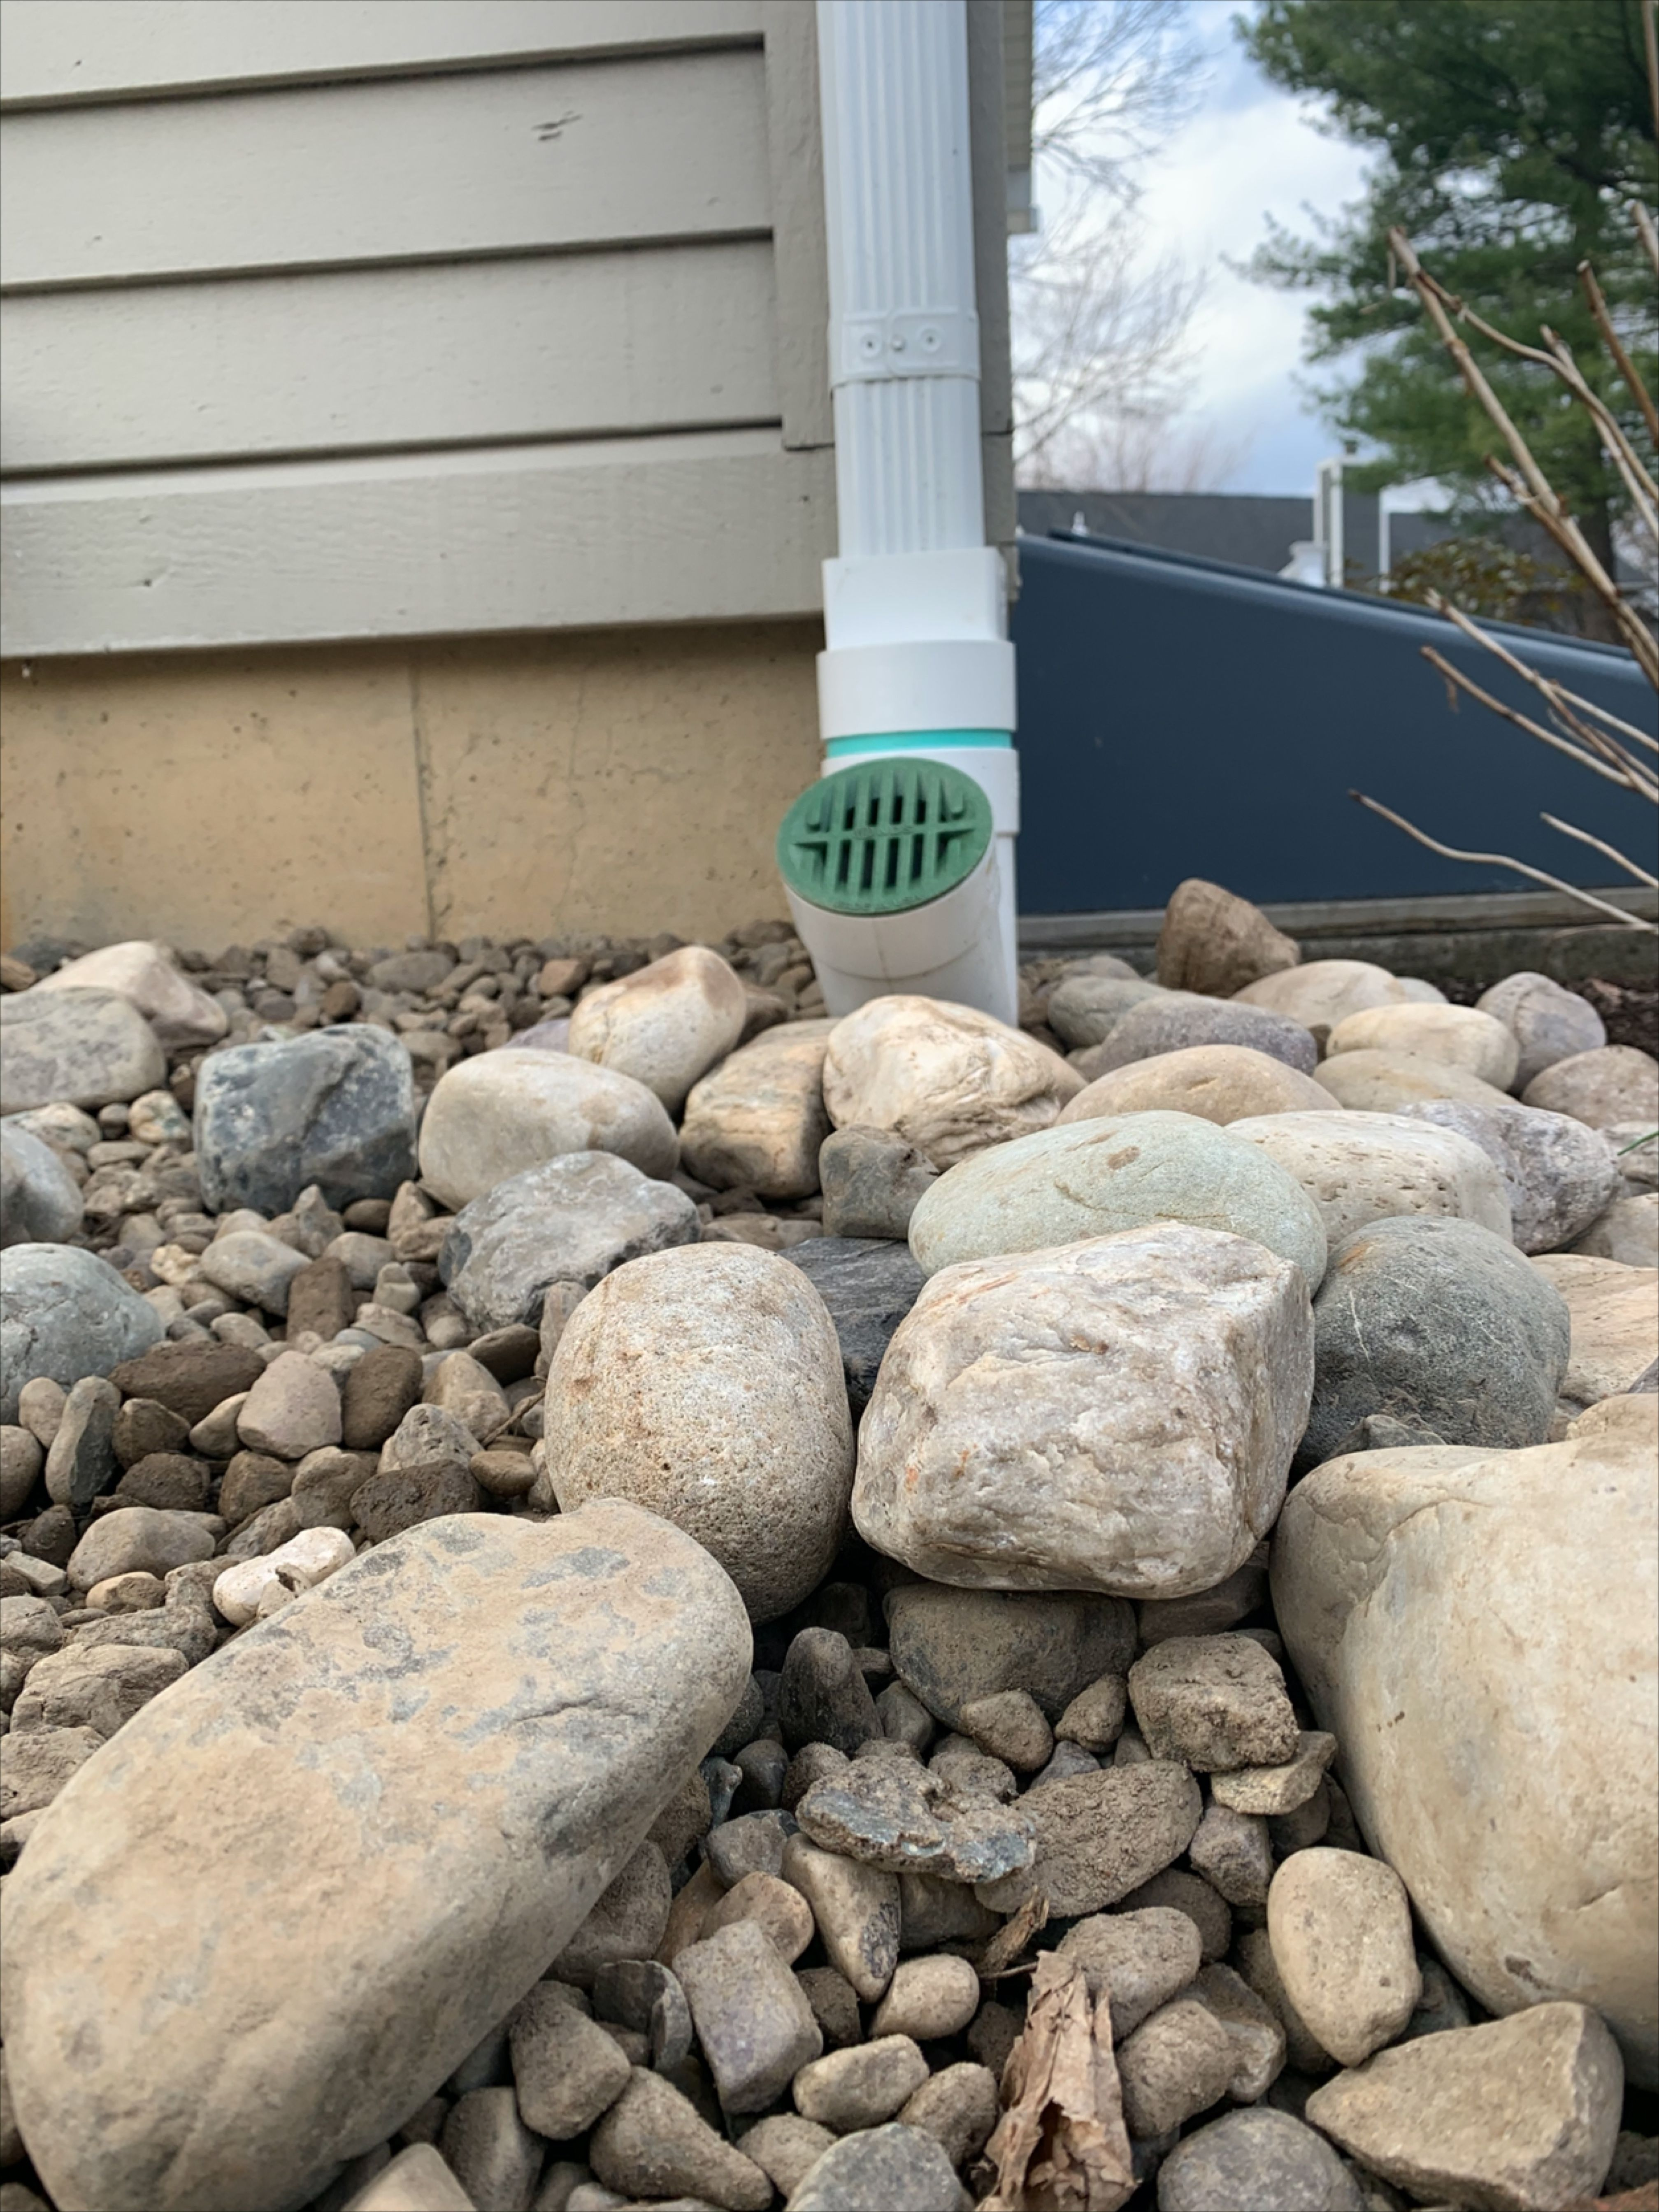 Extending Gutter Downspout With Drainage Rainwater Piped Away From Foundation To Prevent Leaks In 2020 Underground Drainage Drainage Sump Pump Installation